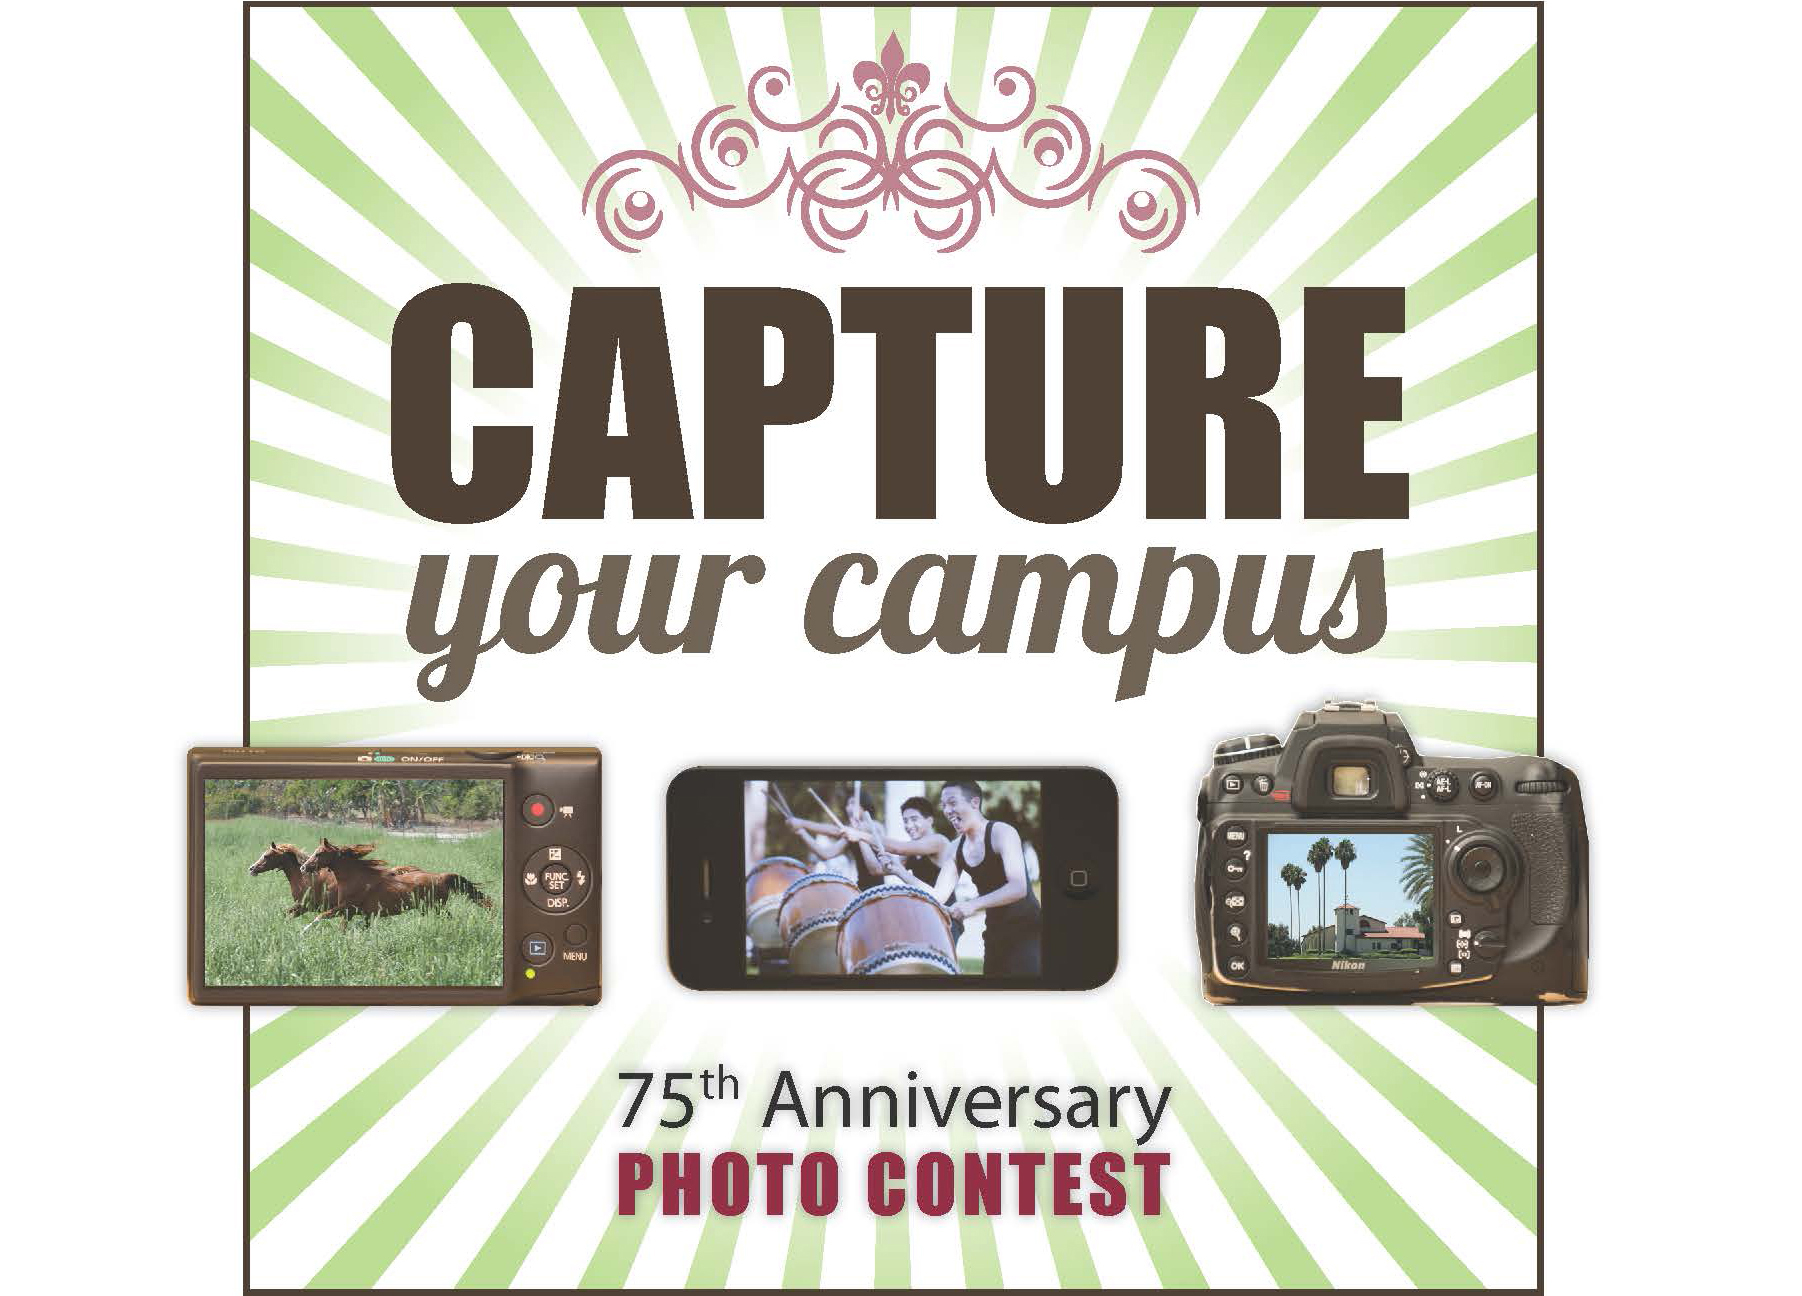 75th Anniversary Photo Contest Deadline is Monday